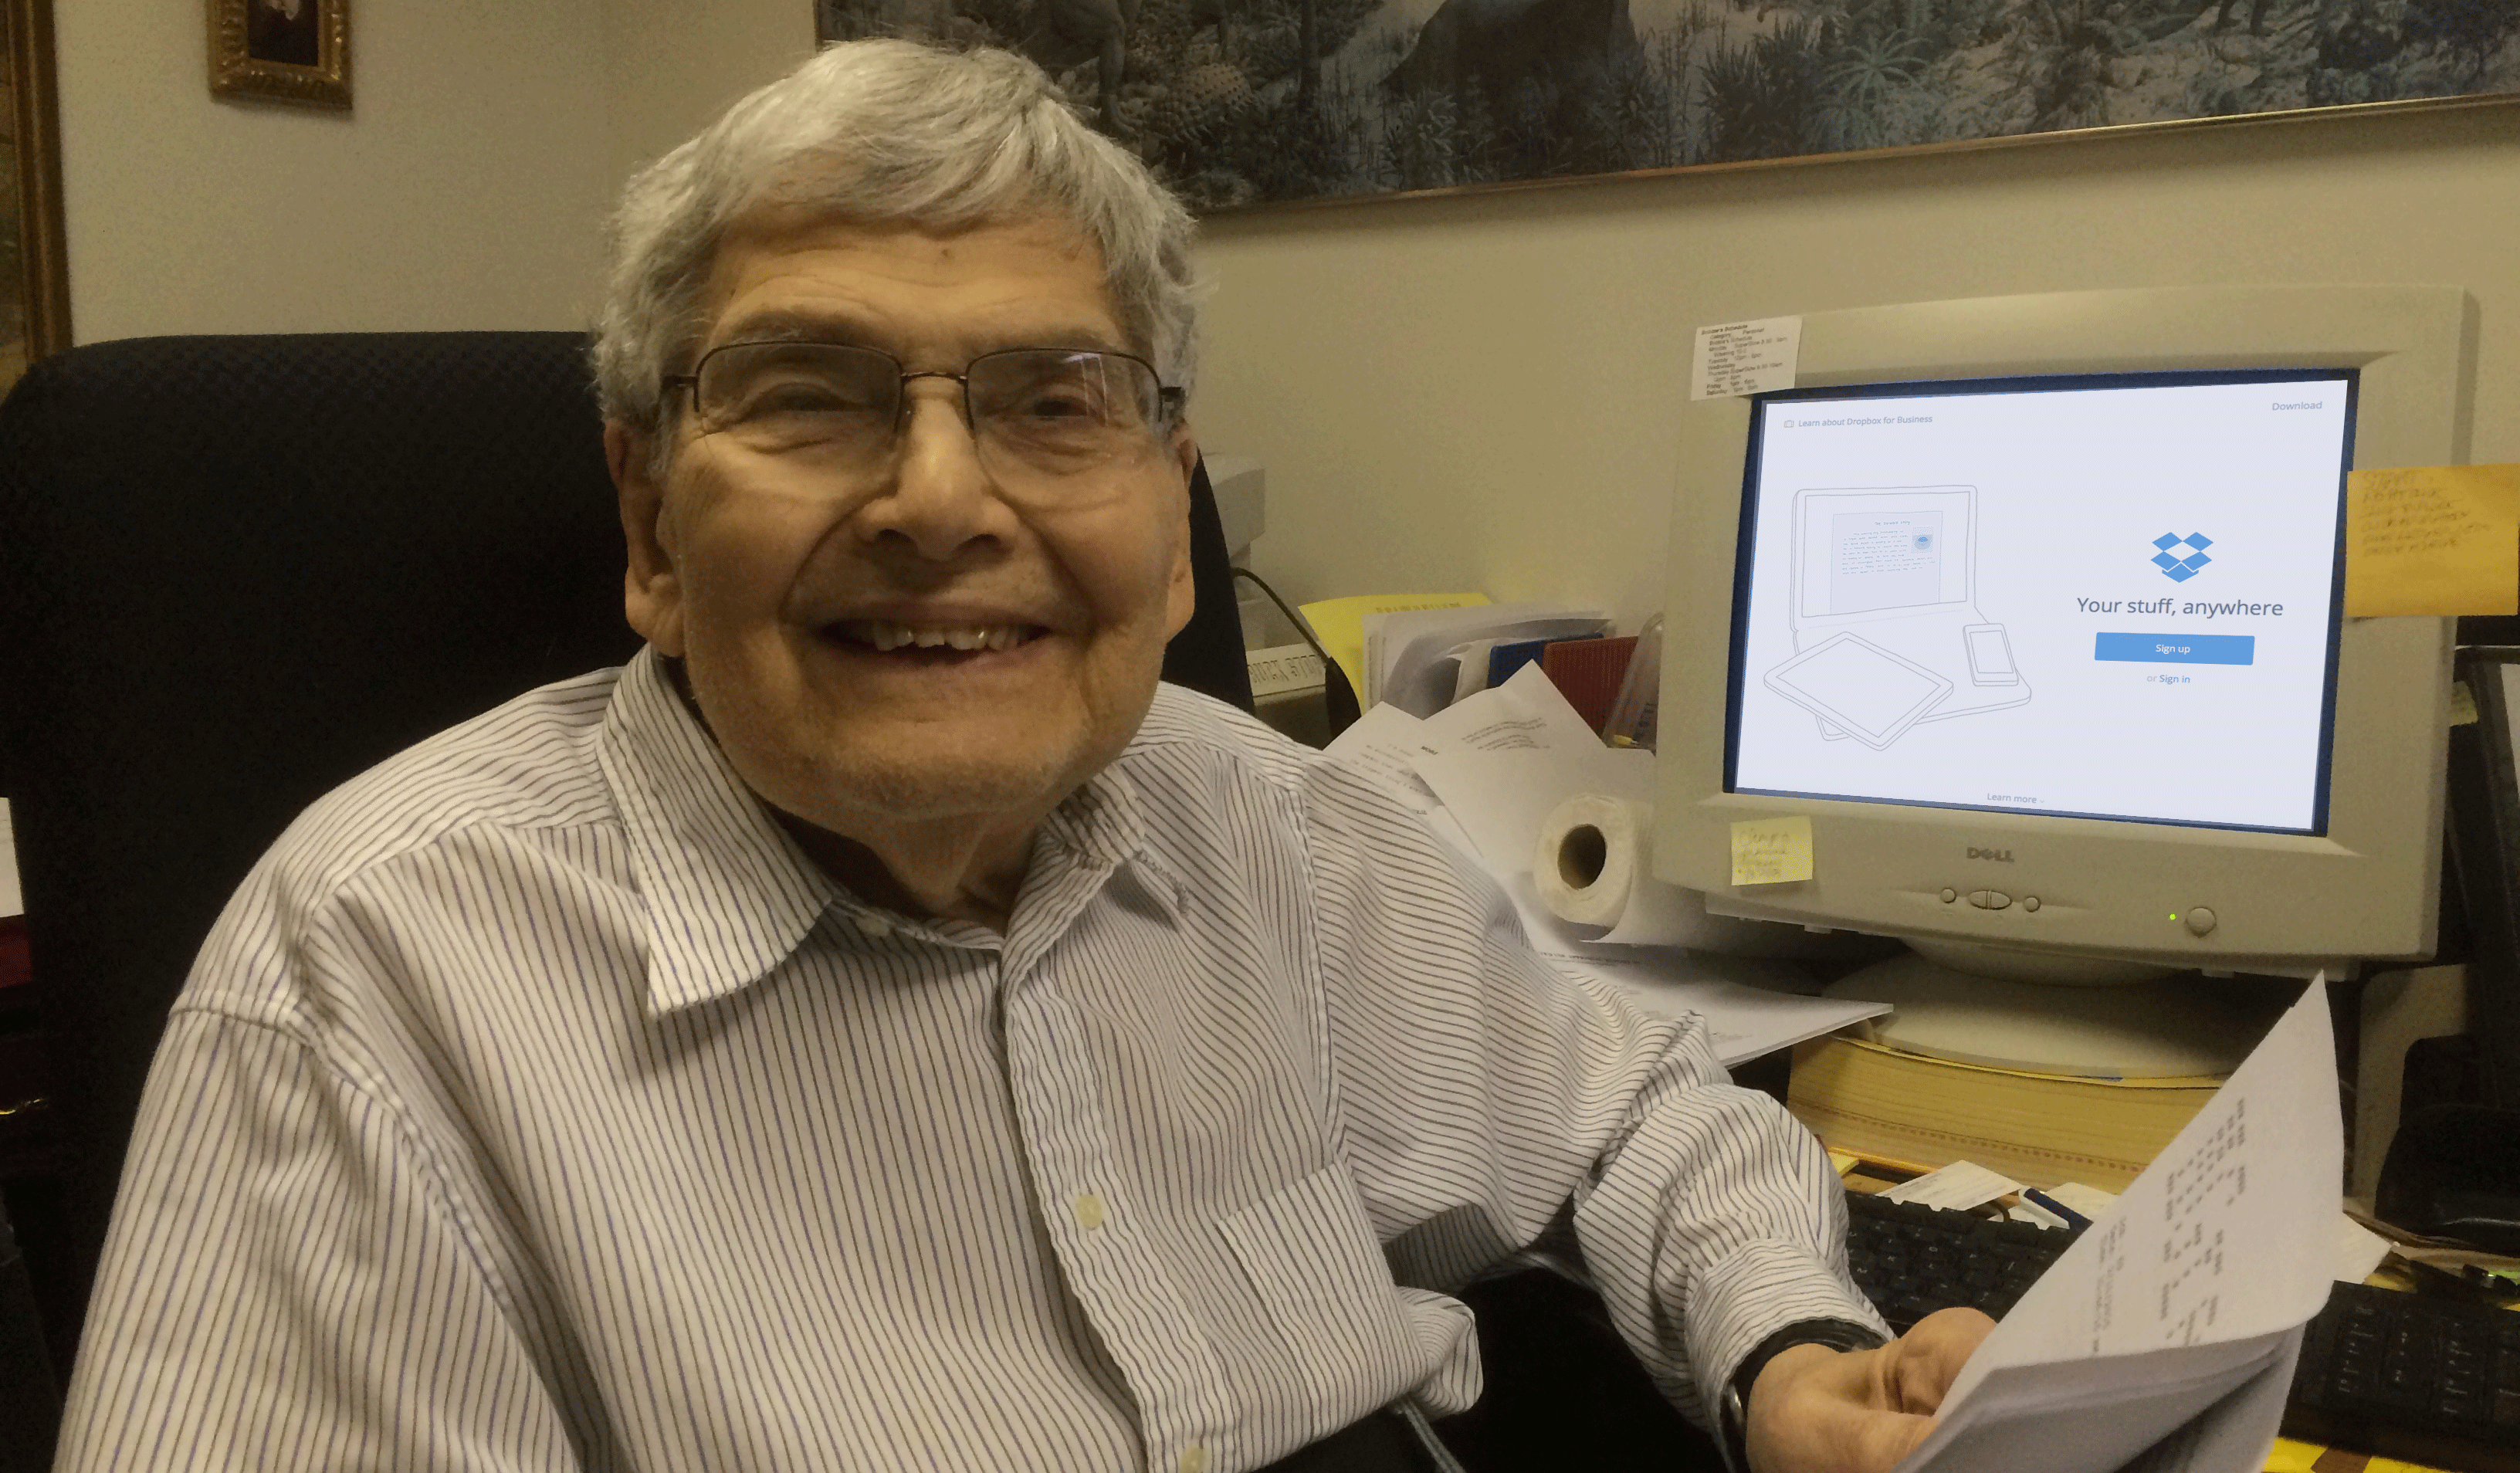 89-year-old Dropbox user Marvin Green